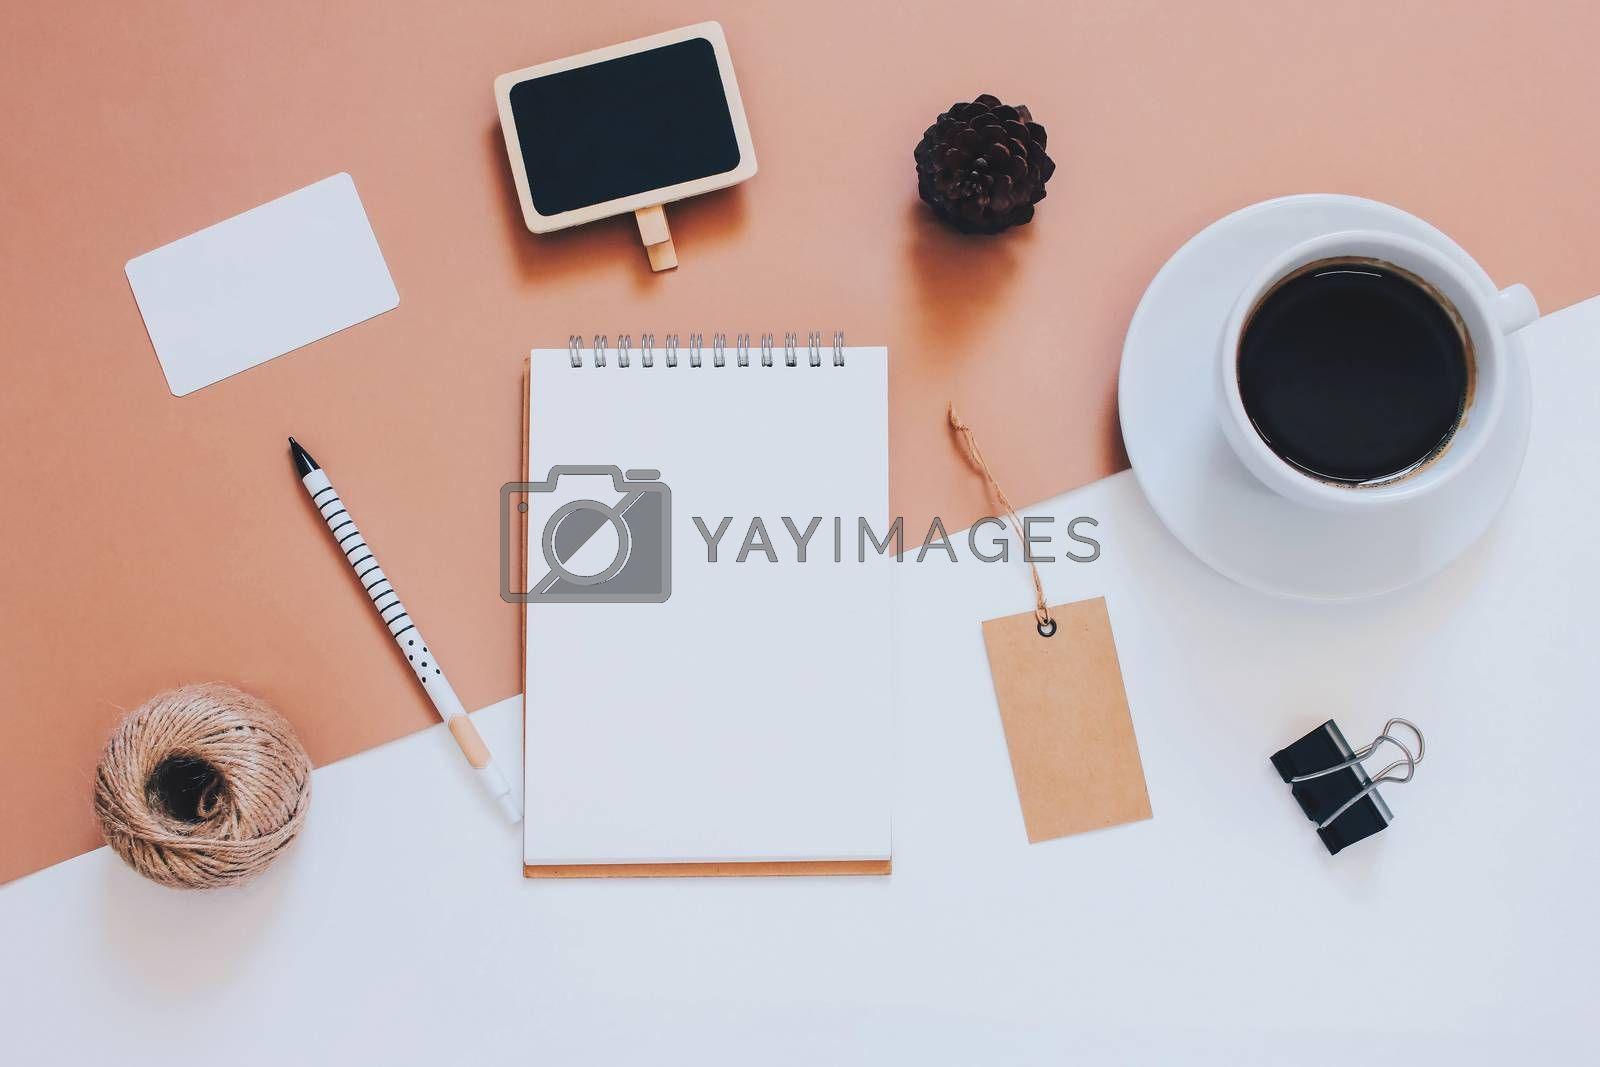 Creative flat lay photo of workspace desk with smartphone, coffee, tag and notebook with copy space background, minimal styled